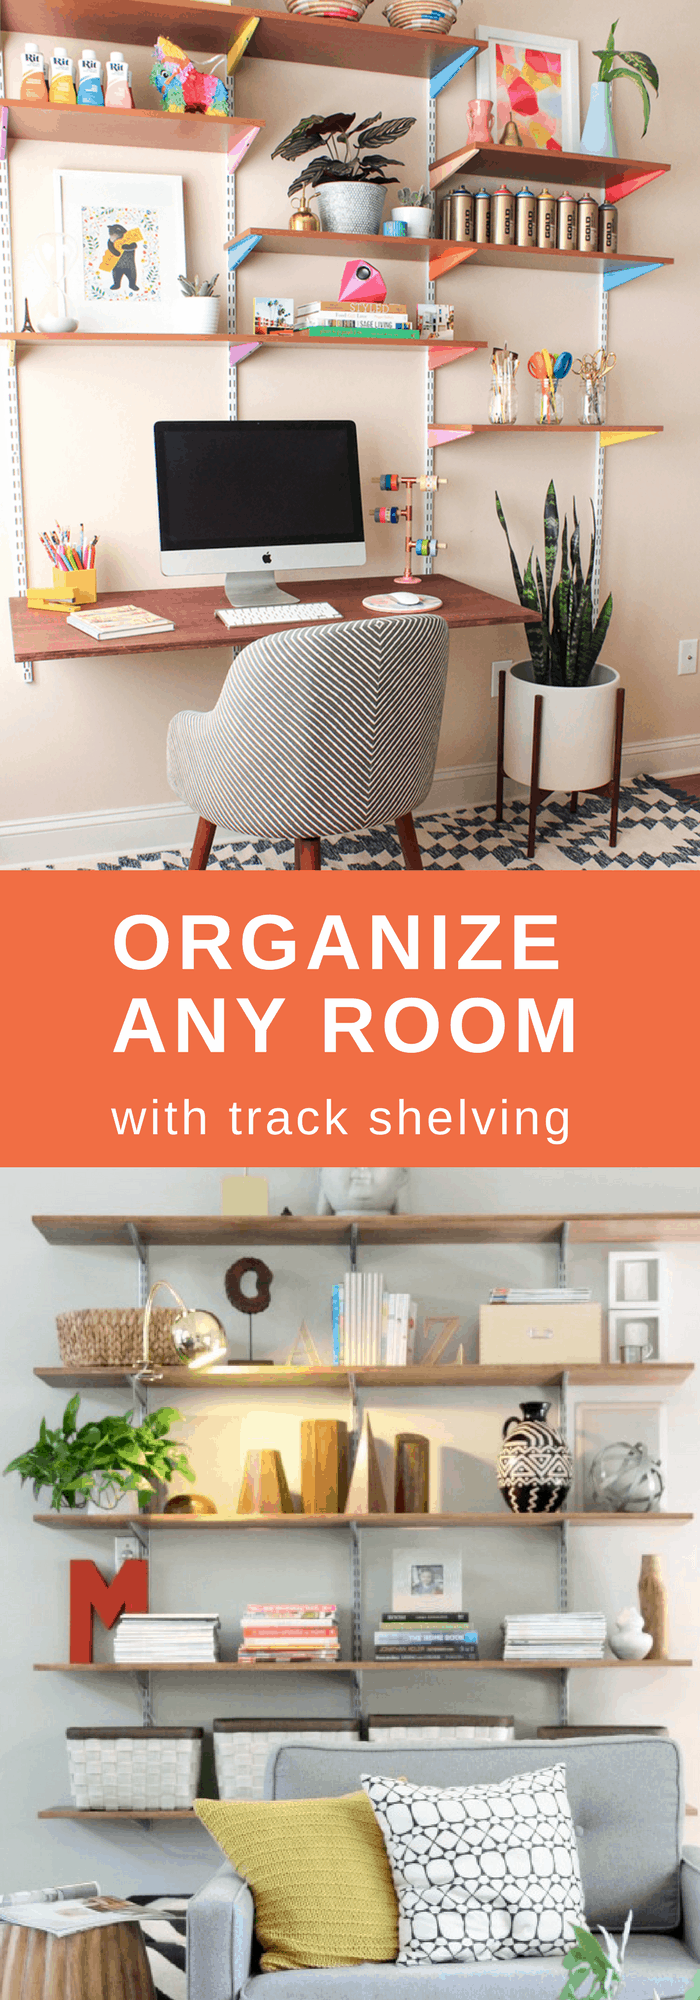 Organization--Organize Any Room with Track Shelving--The Organized Mom